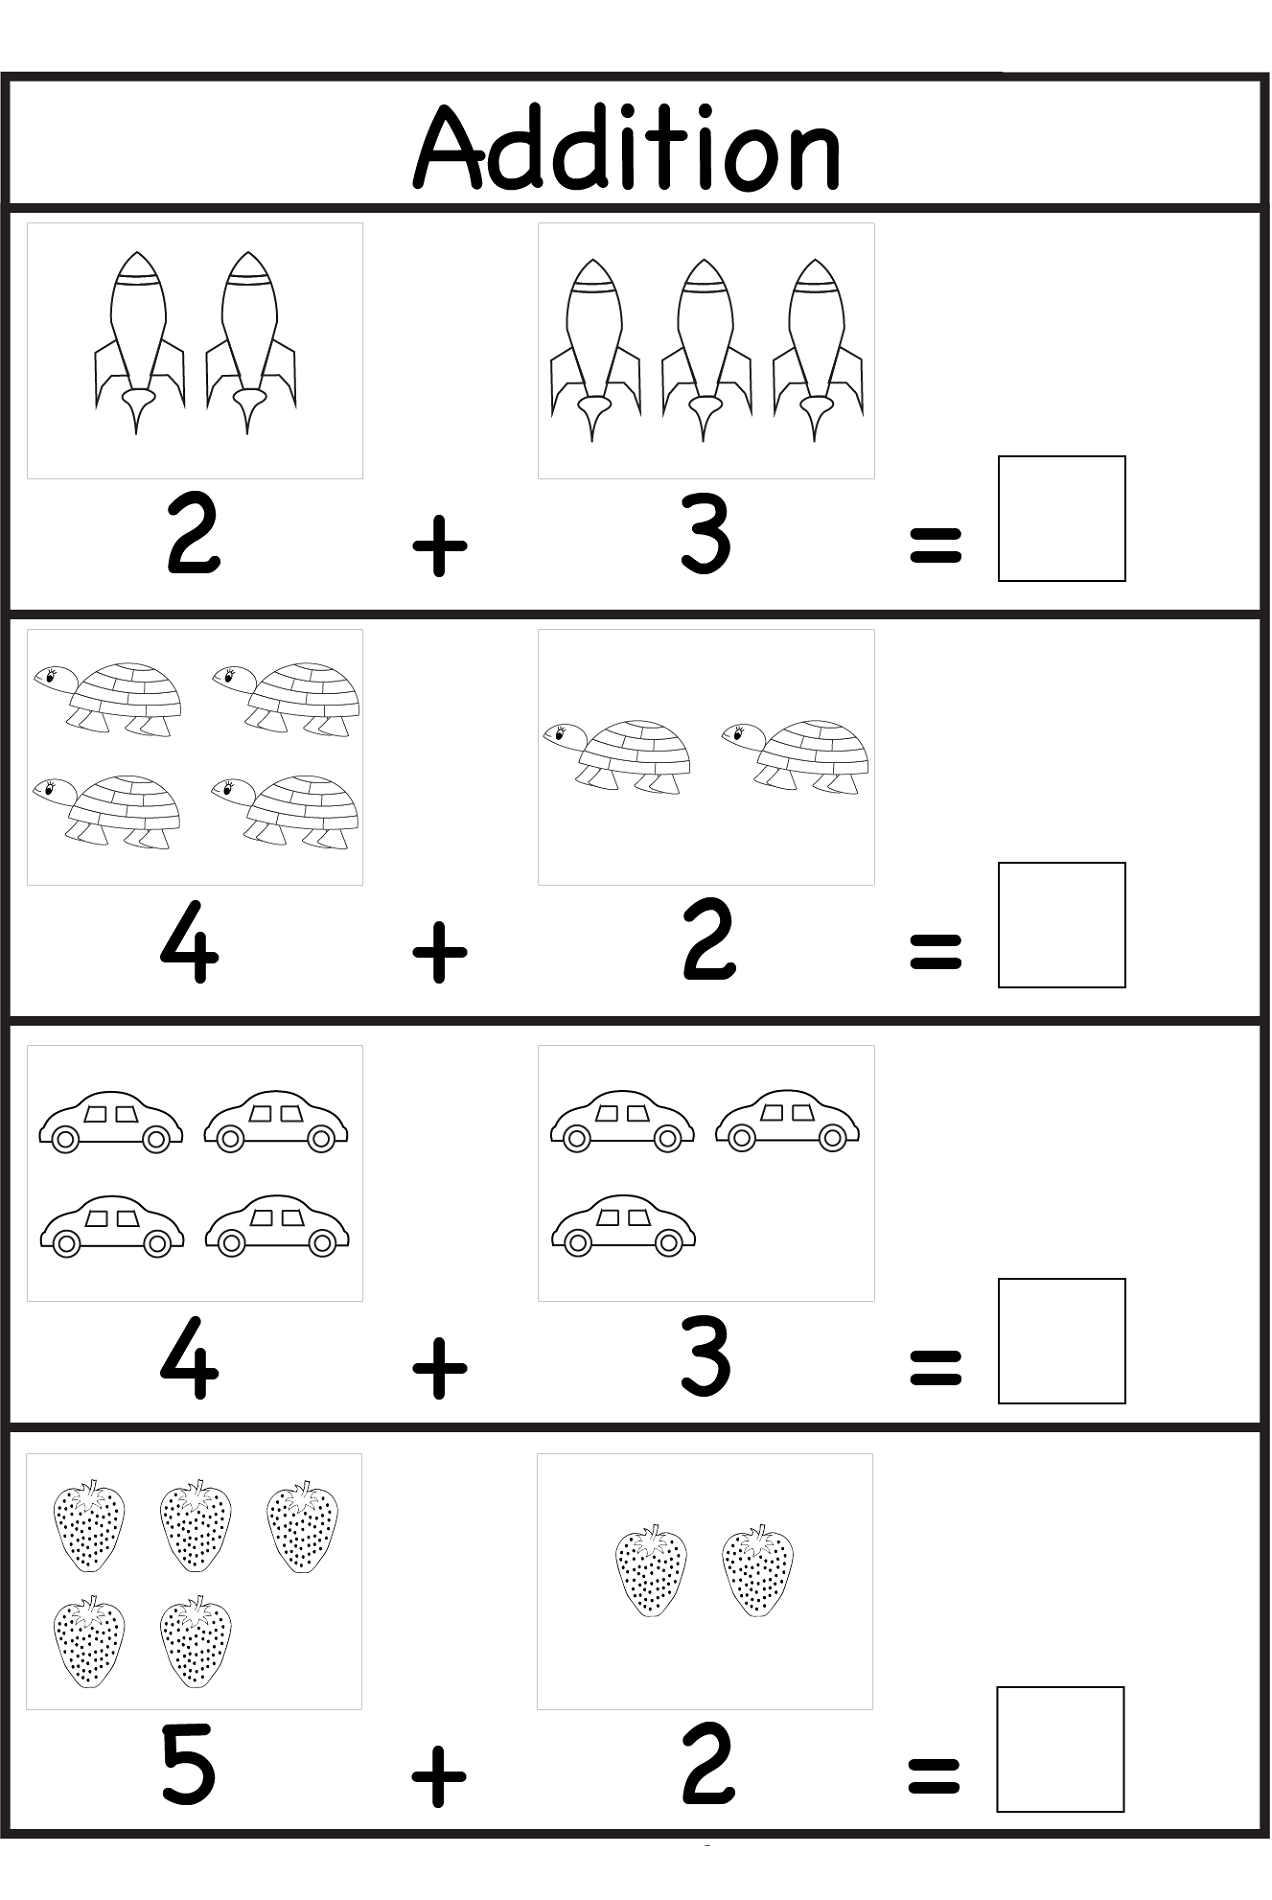 Maths Worksheets For 3 Year Olds Worksheet Kids – Maths for 5 Year Olds Worksheets